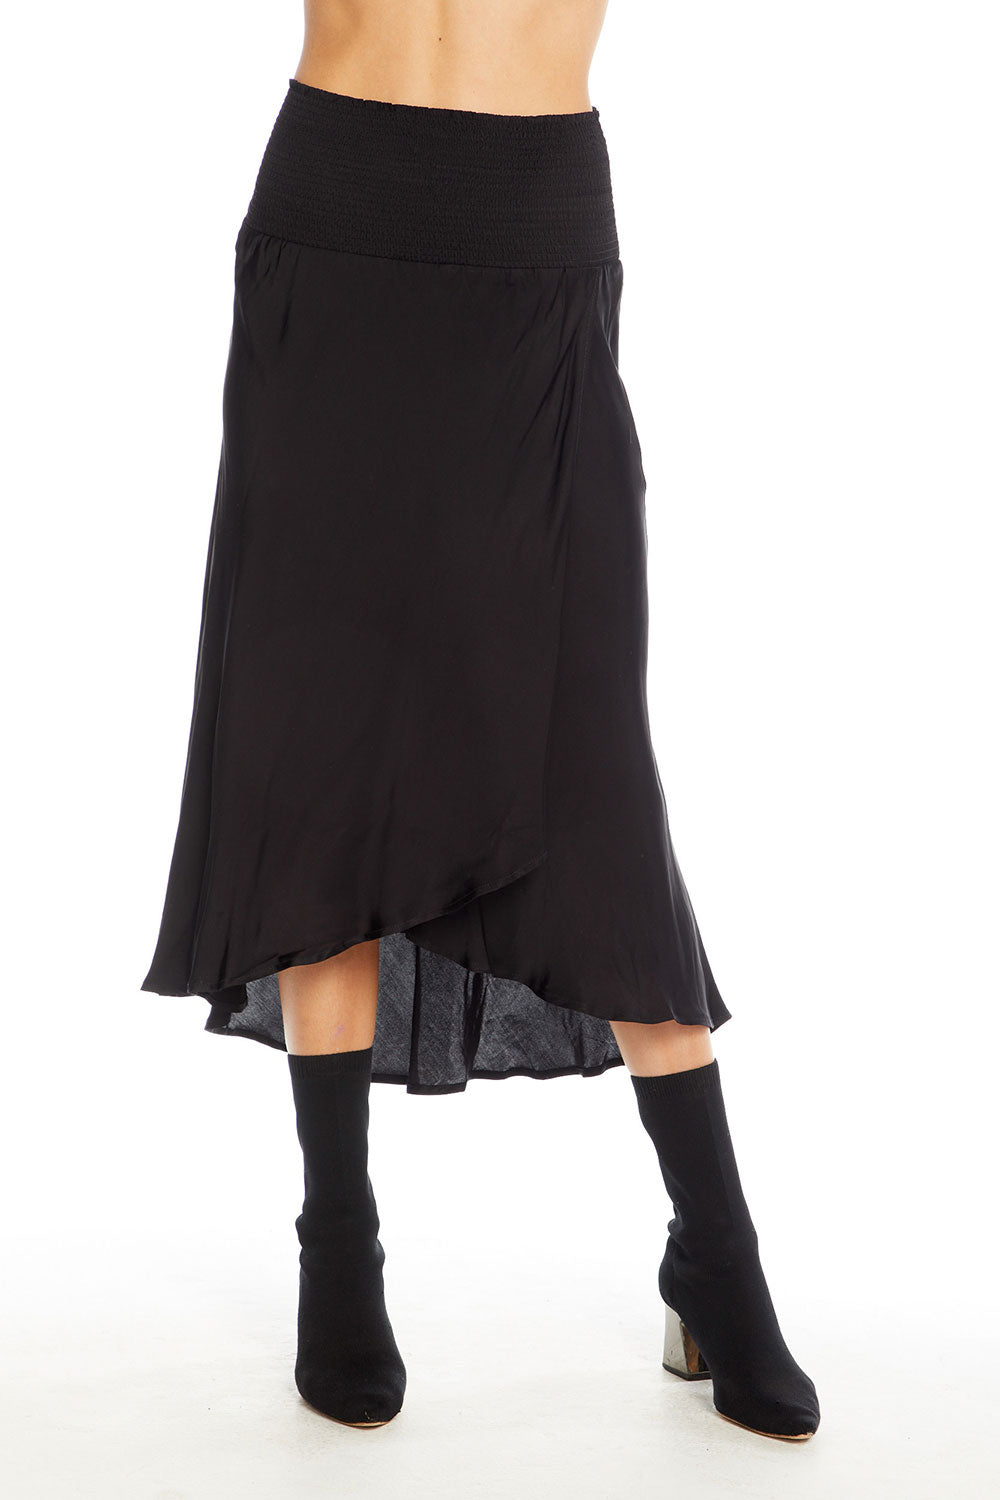 Silky Basics Smocked Waist Faux Wrap Midi Skirt WOMENS - chaserbrand